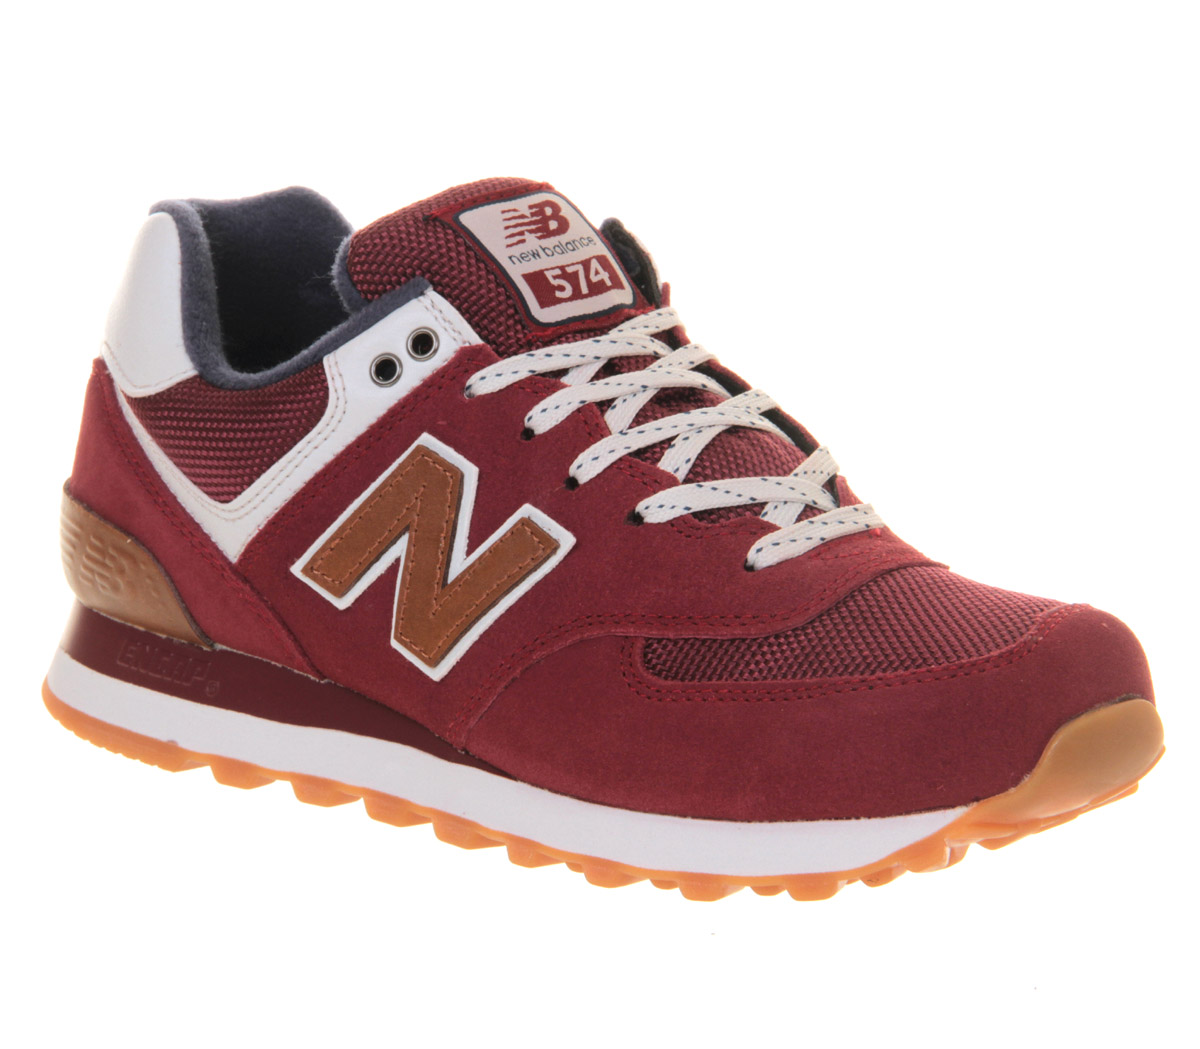 New-Balance-New-Balance-M574-MAROON-NAVY-BROWN-Trainers-Shoes